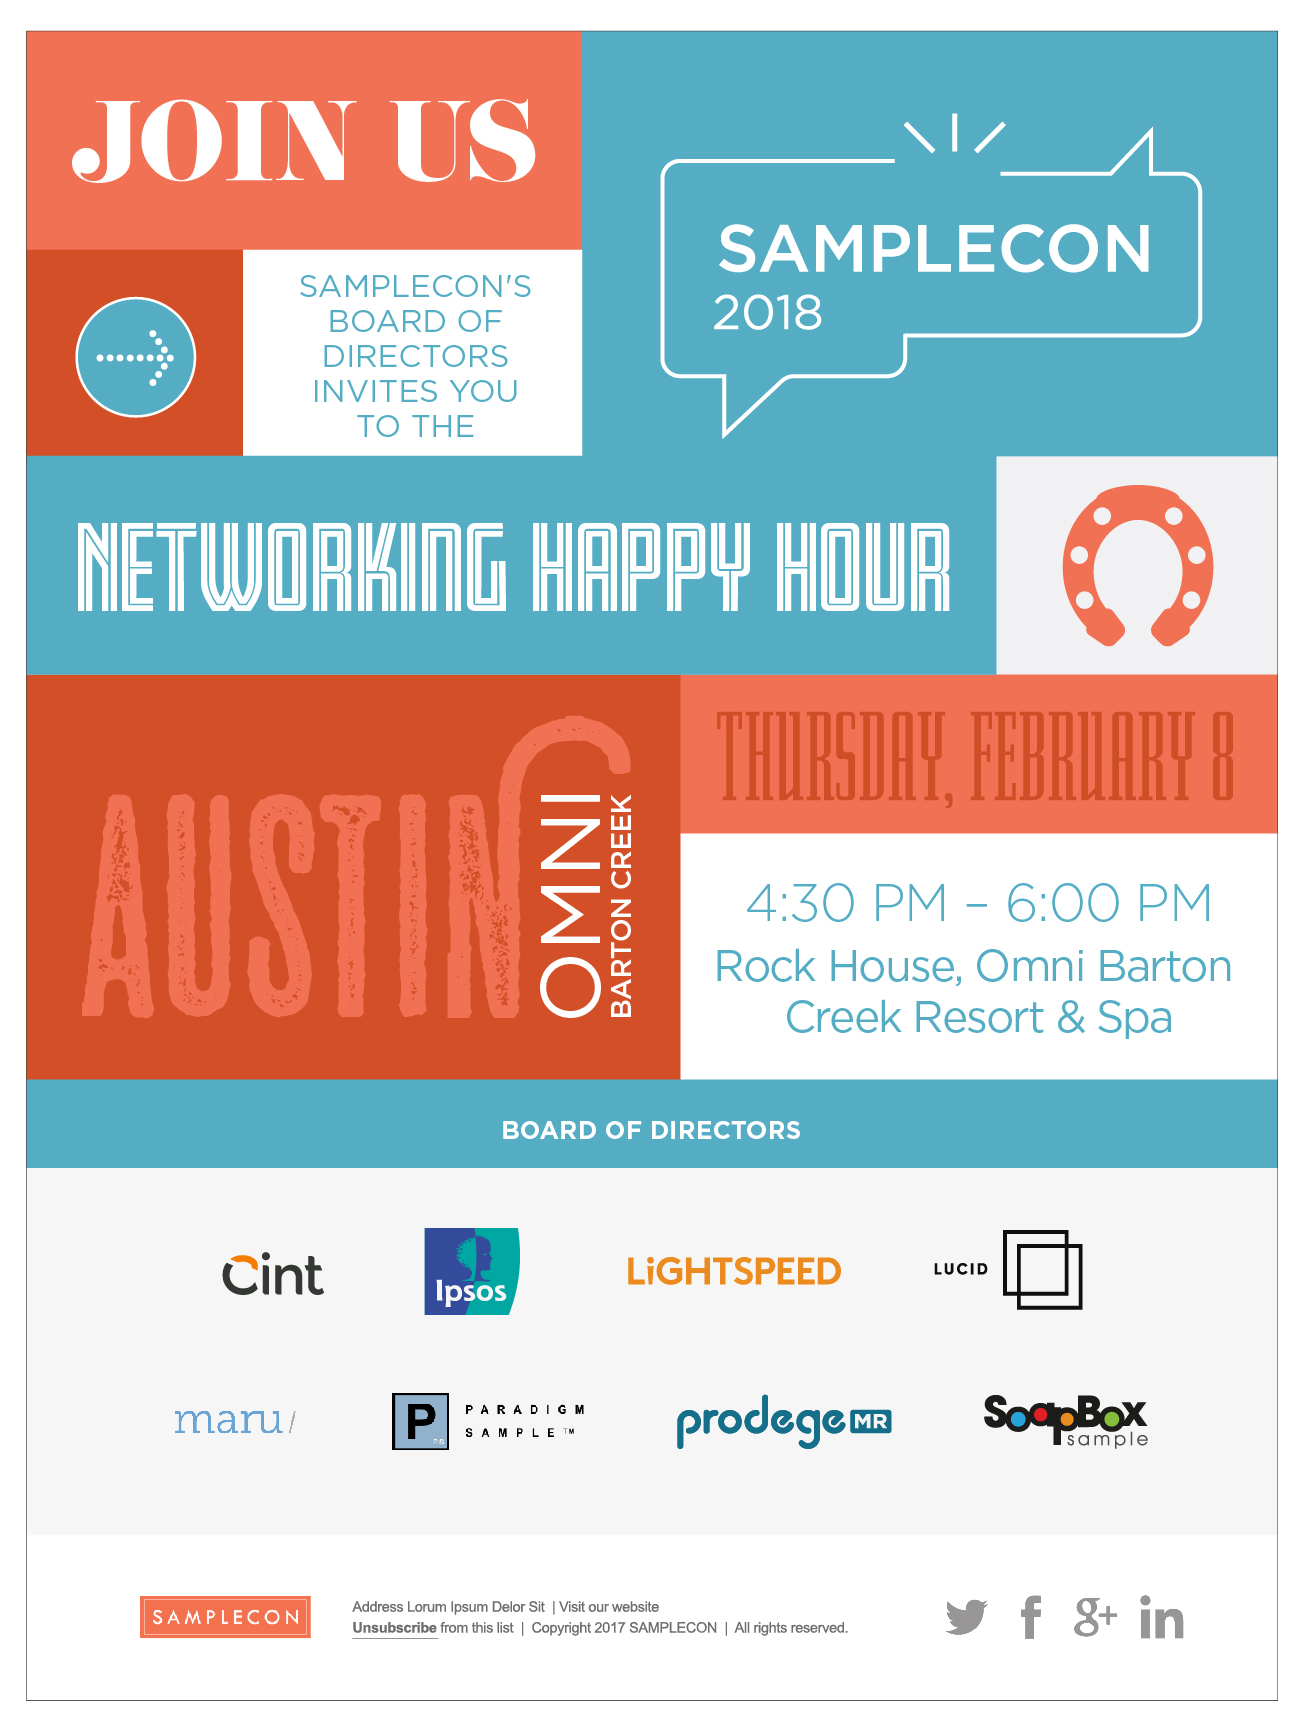 WEB_SampleCon_Email_Networking_Happy_Hour_FINAL-01-01.jpg